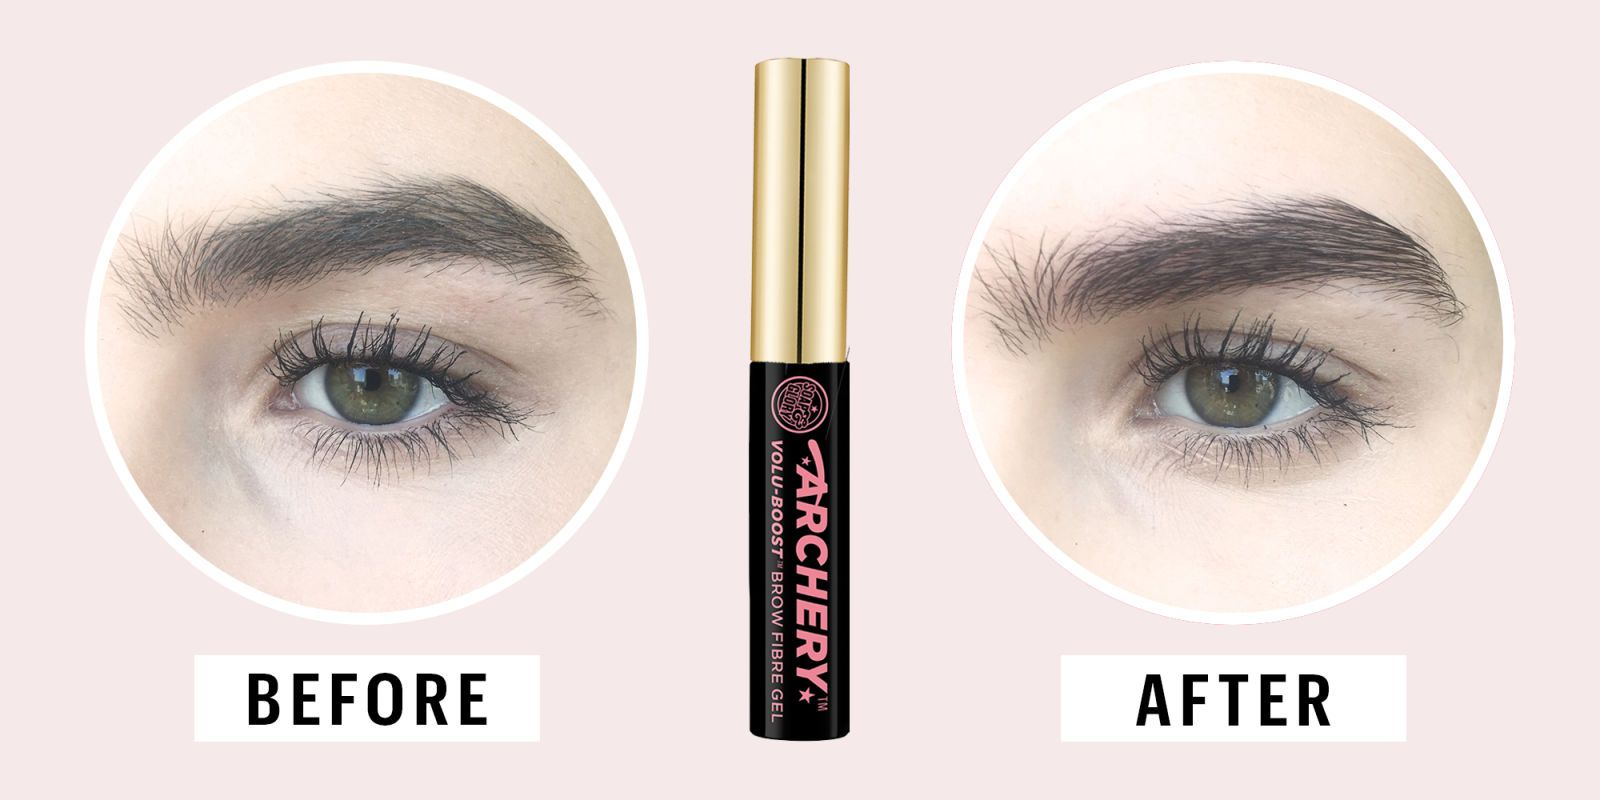 83be65e8ca7 I Tried the 7 Best-Rated Brow Gels and This Was the Winner ...